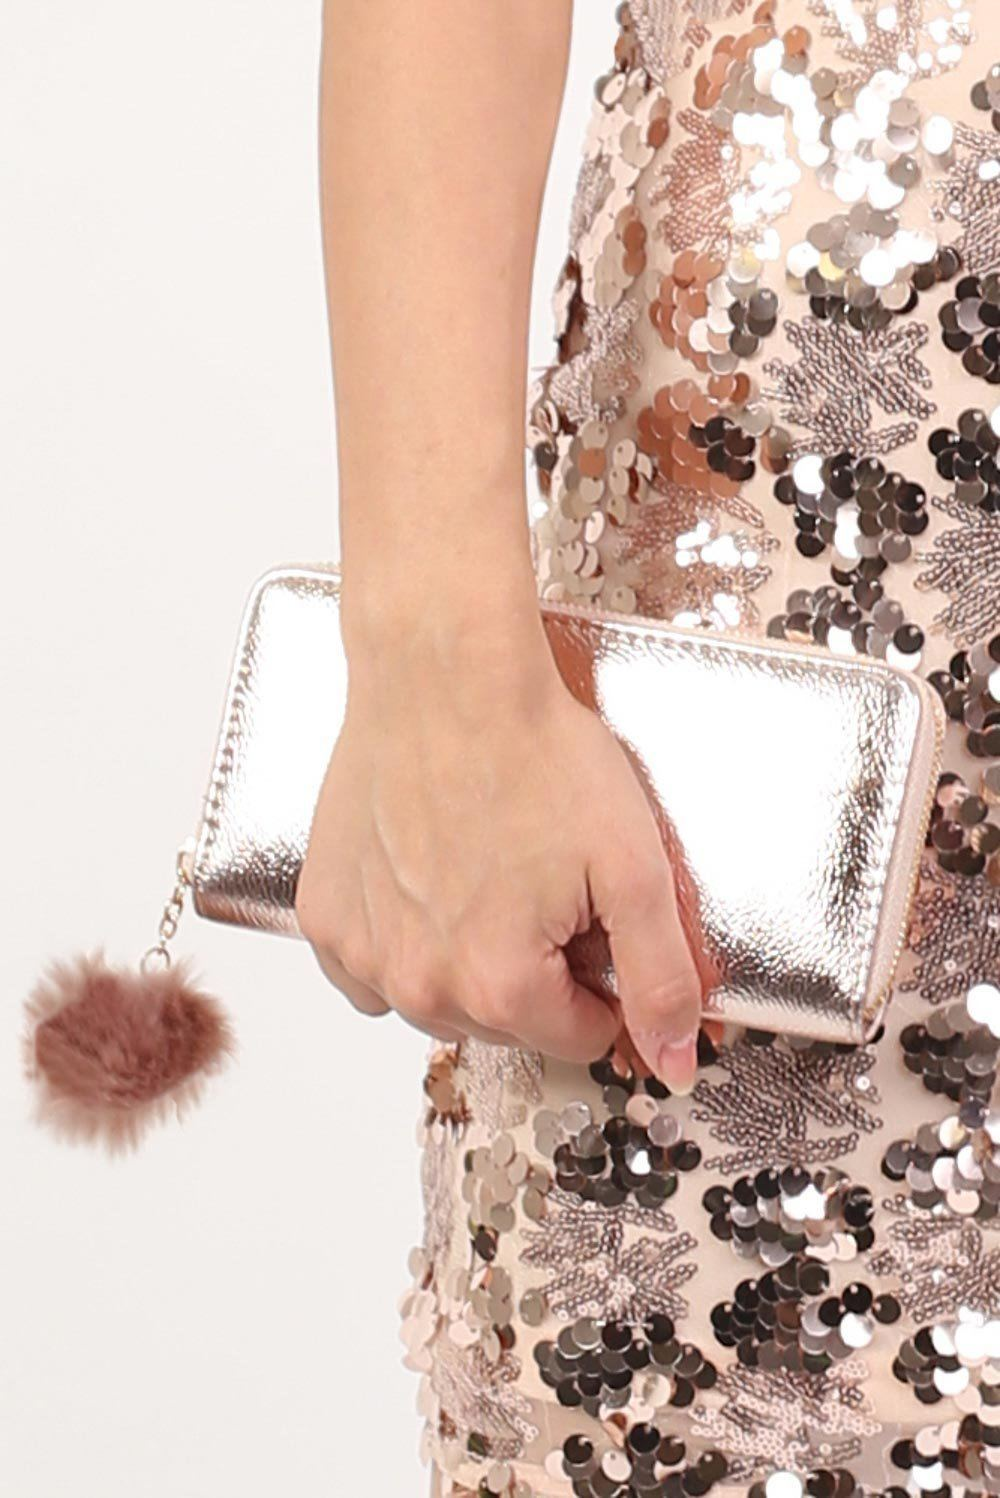 Faux Fur Pom Pom Detail Shiny Metallic Clutch Purse in Rose Gold 0